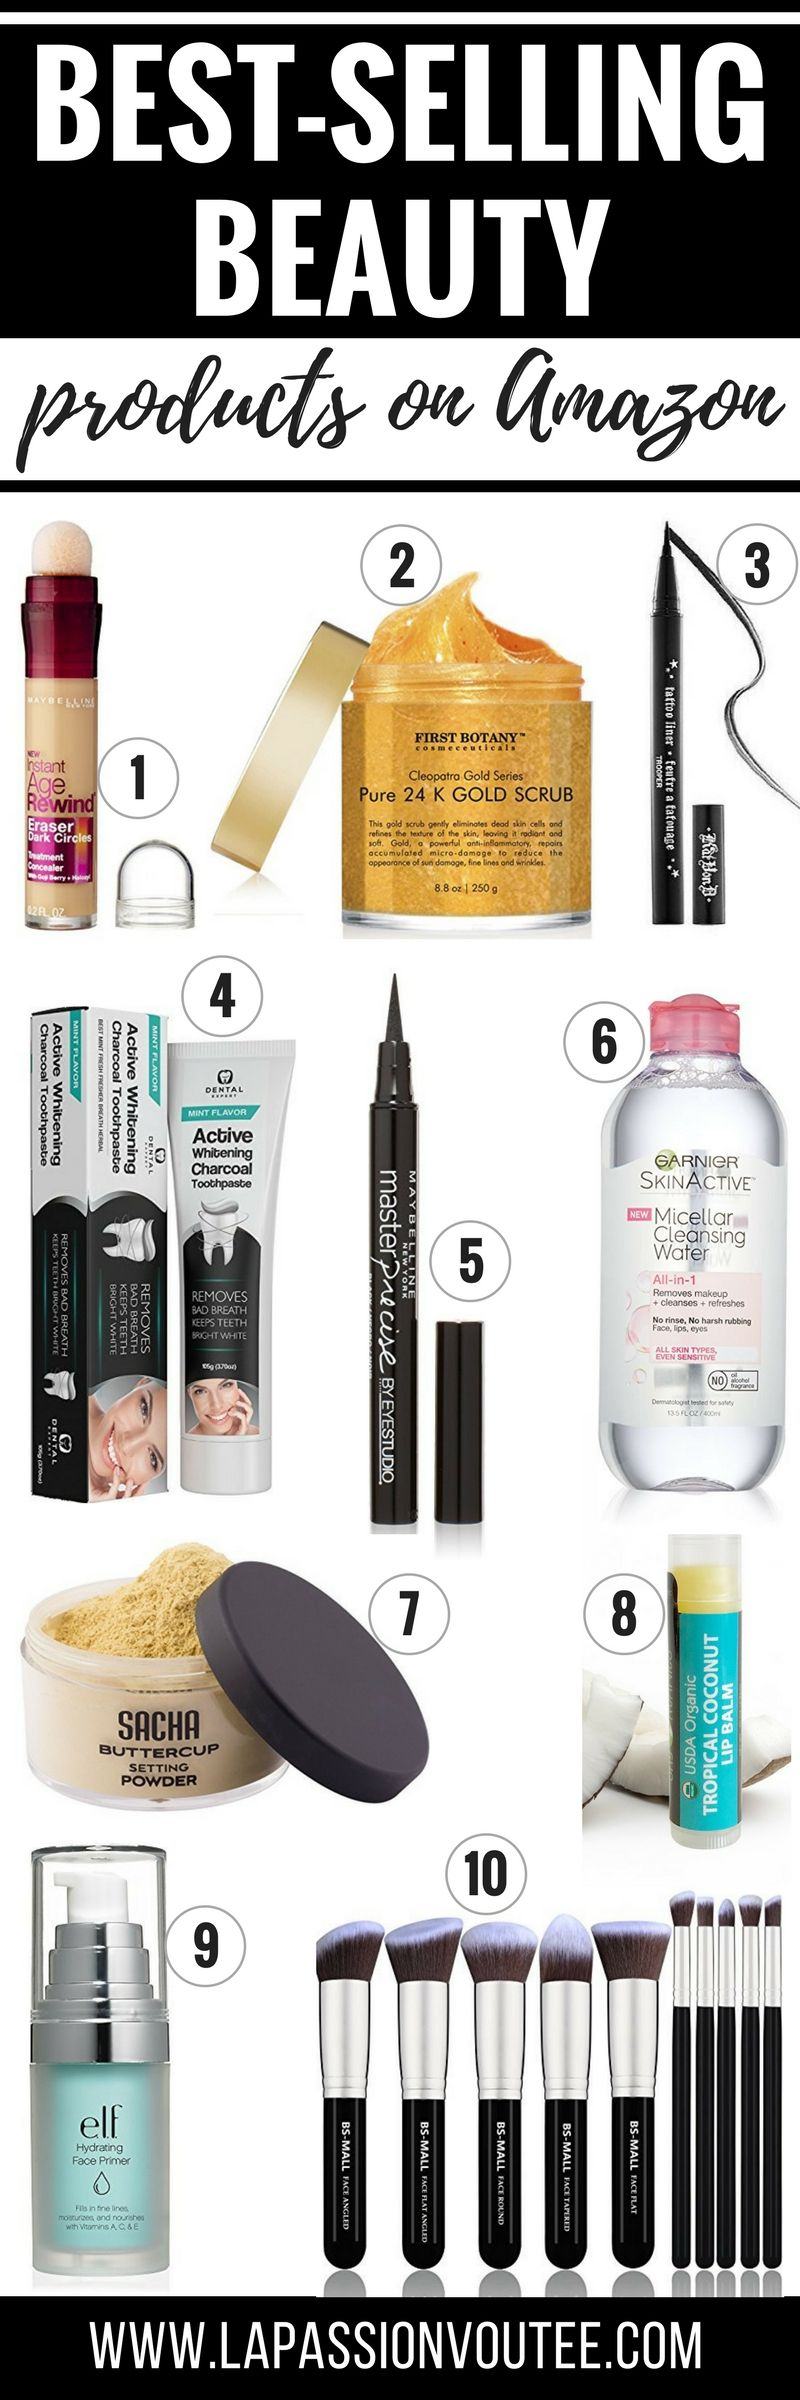 I Ve Always Been An Amazon Enthusiast While Searching For The Best Things To Buy On Amazon I Came Across T Beauty Products Drugstore Beauty Must Haves Beauty